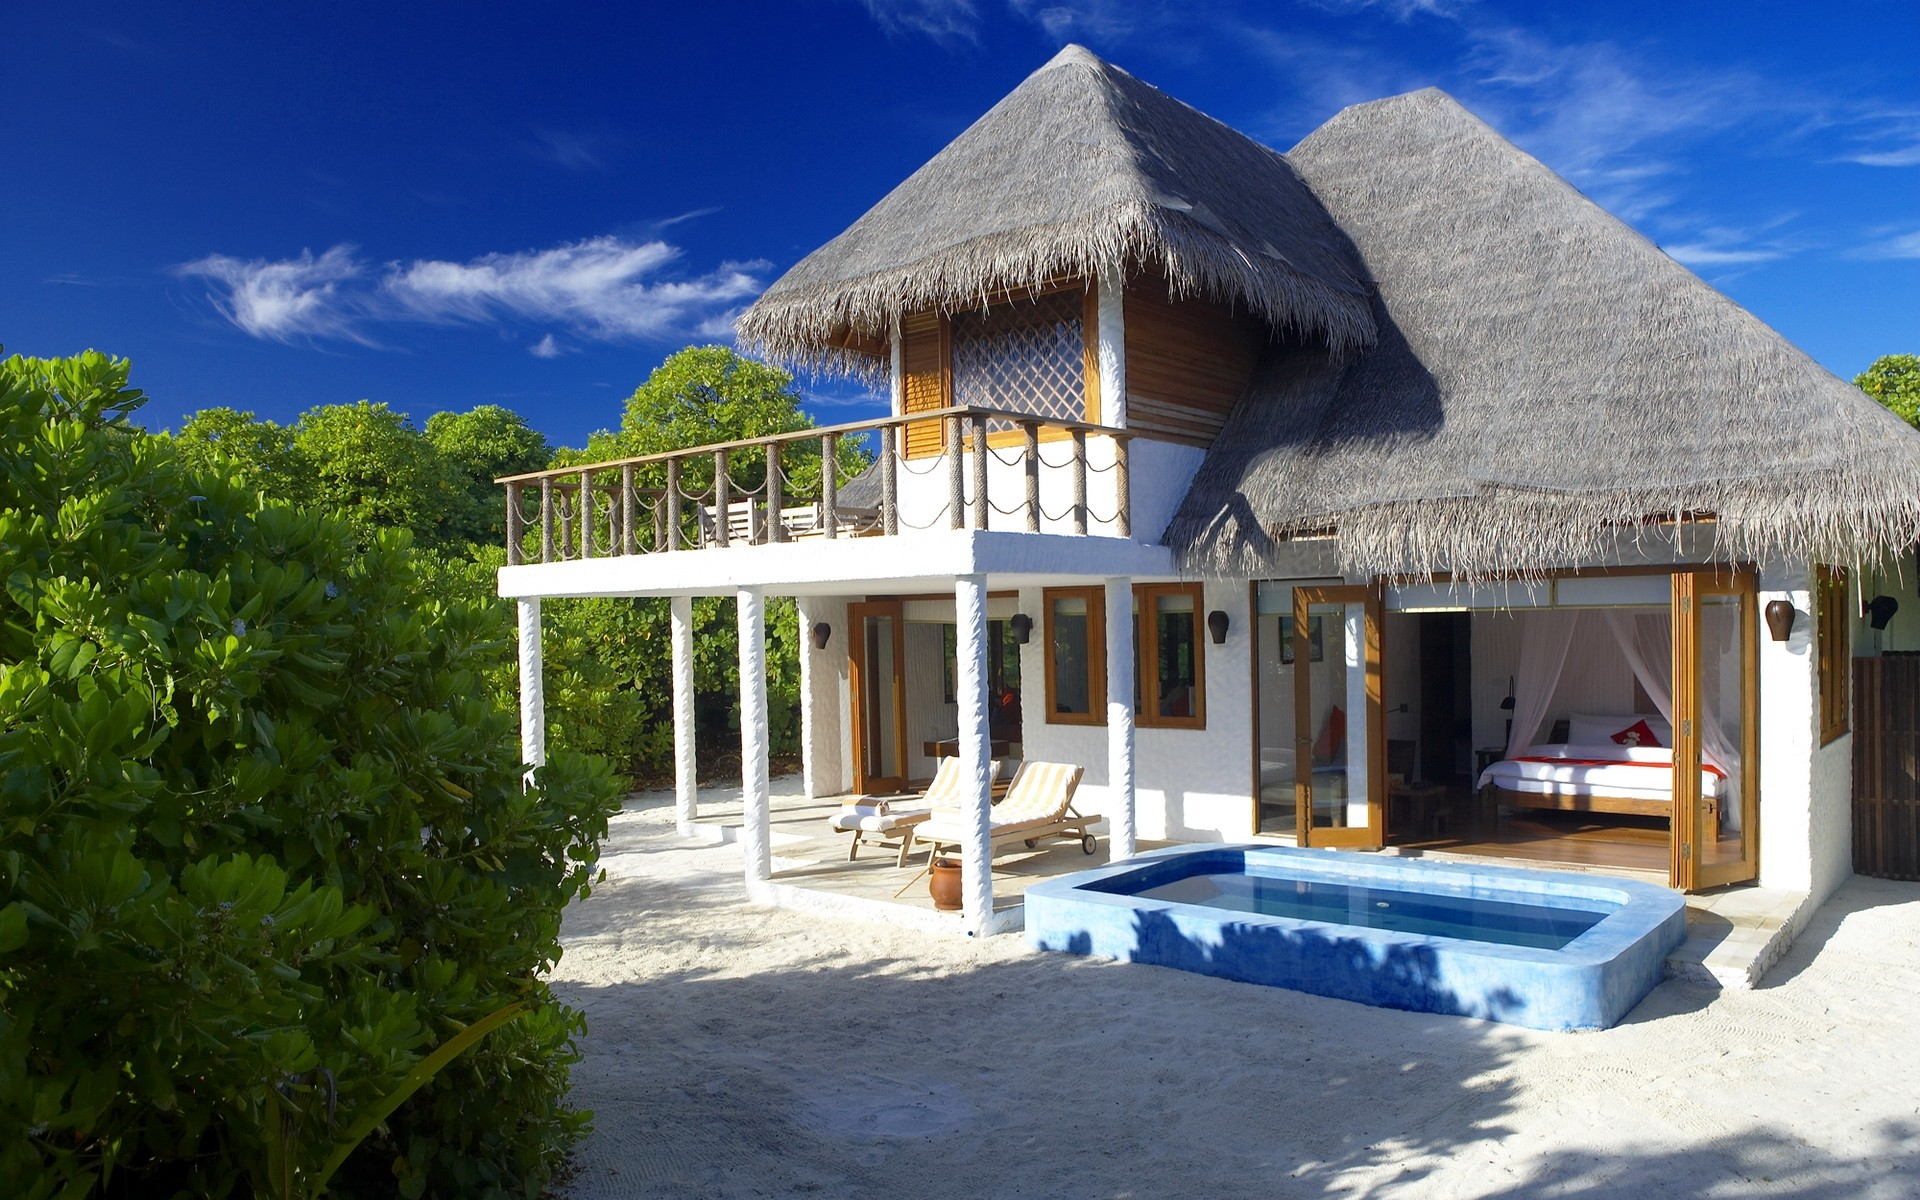 Dise o de bungalows hd 1920x1200 imagenes wallpapers for Apartamentos playa